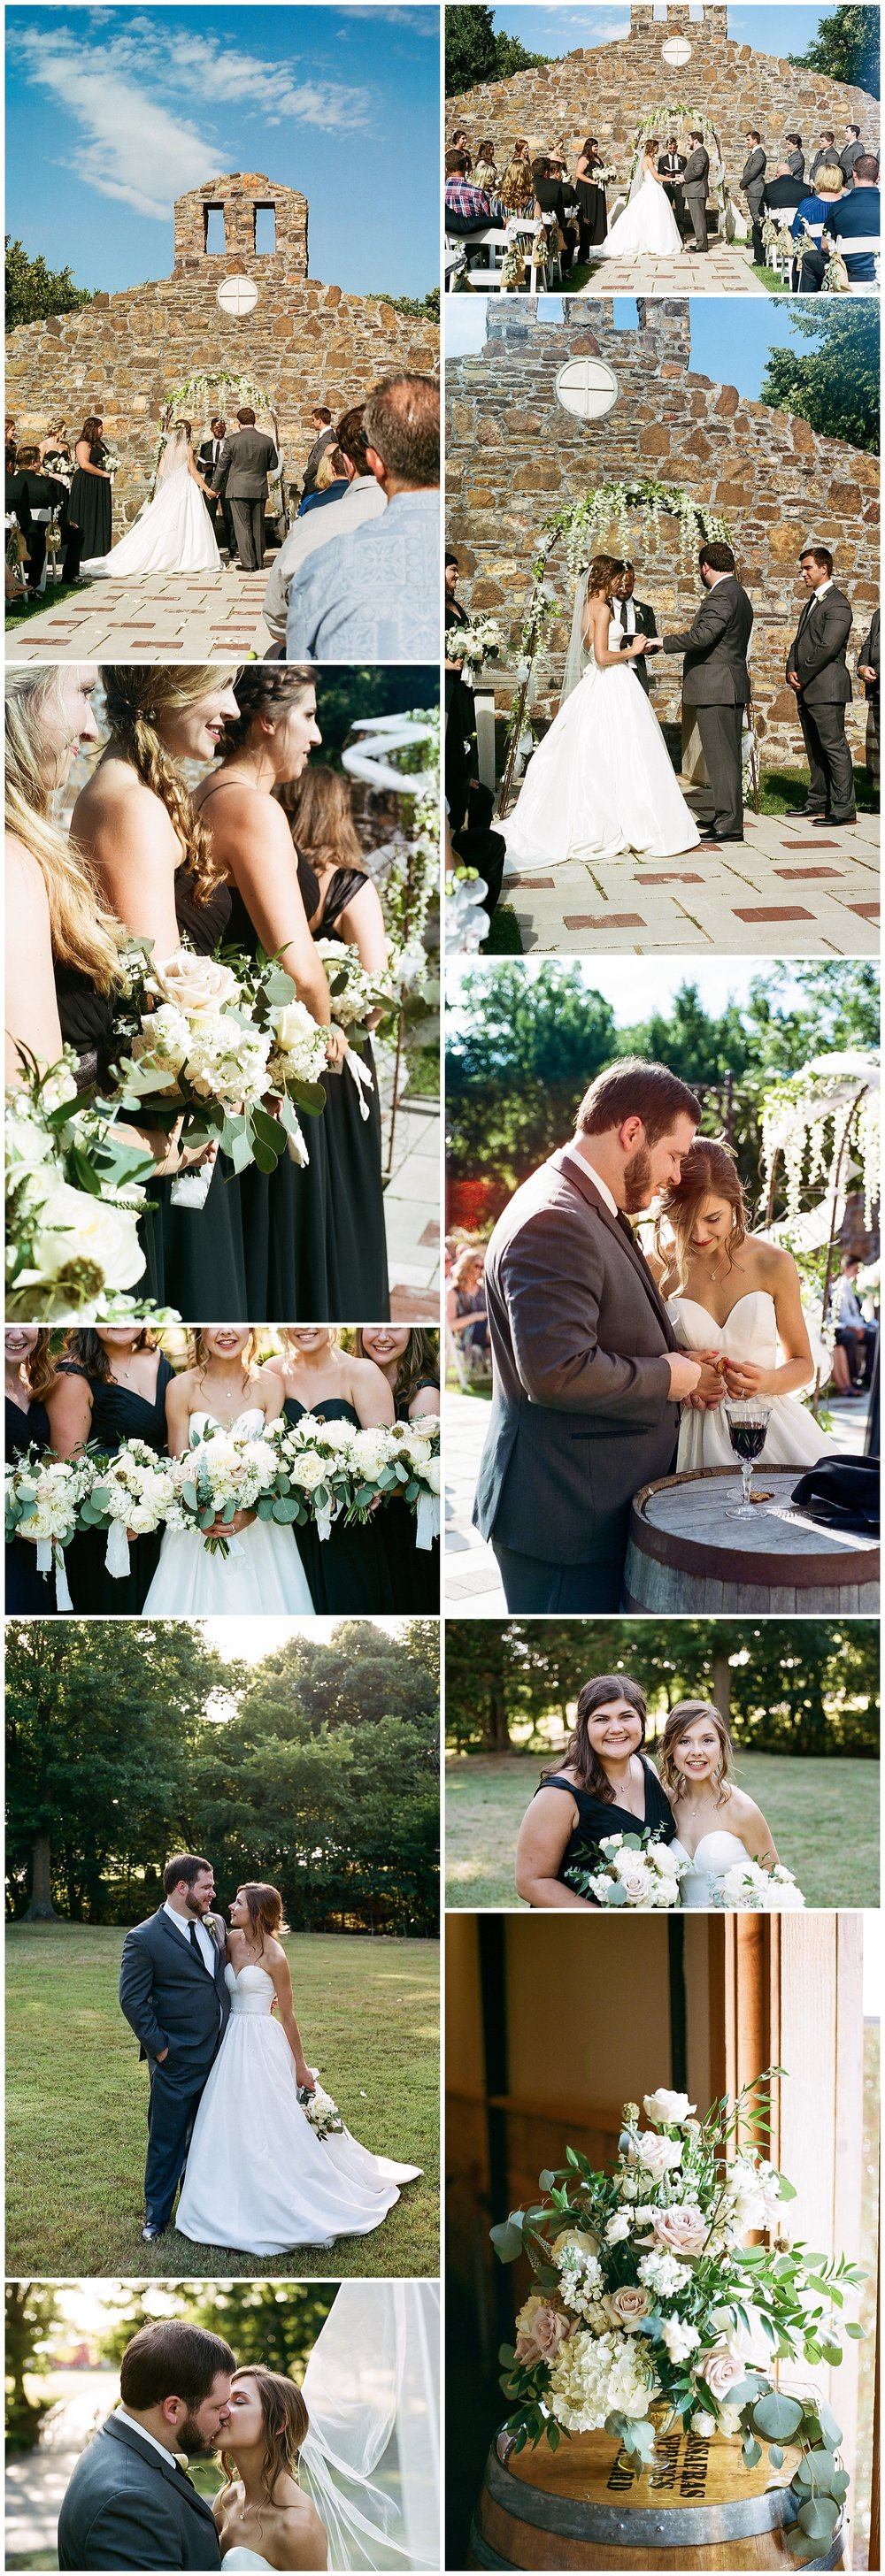 Tanner Burge Photo - Portra 400 Wedding Film 35mm Megan & Blake